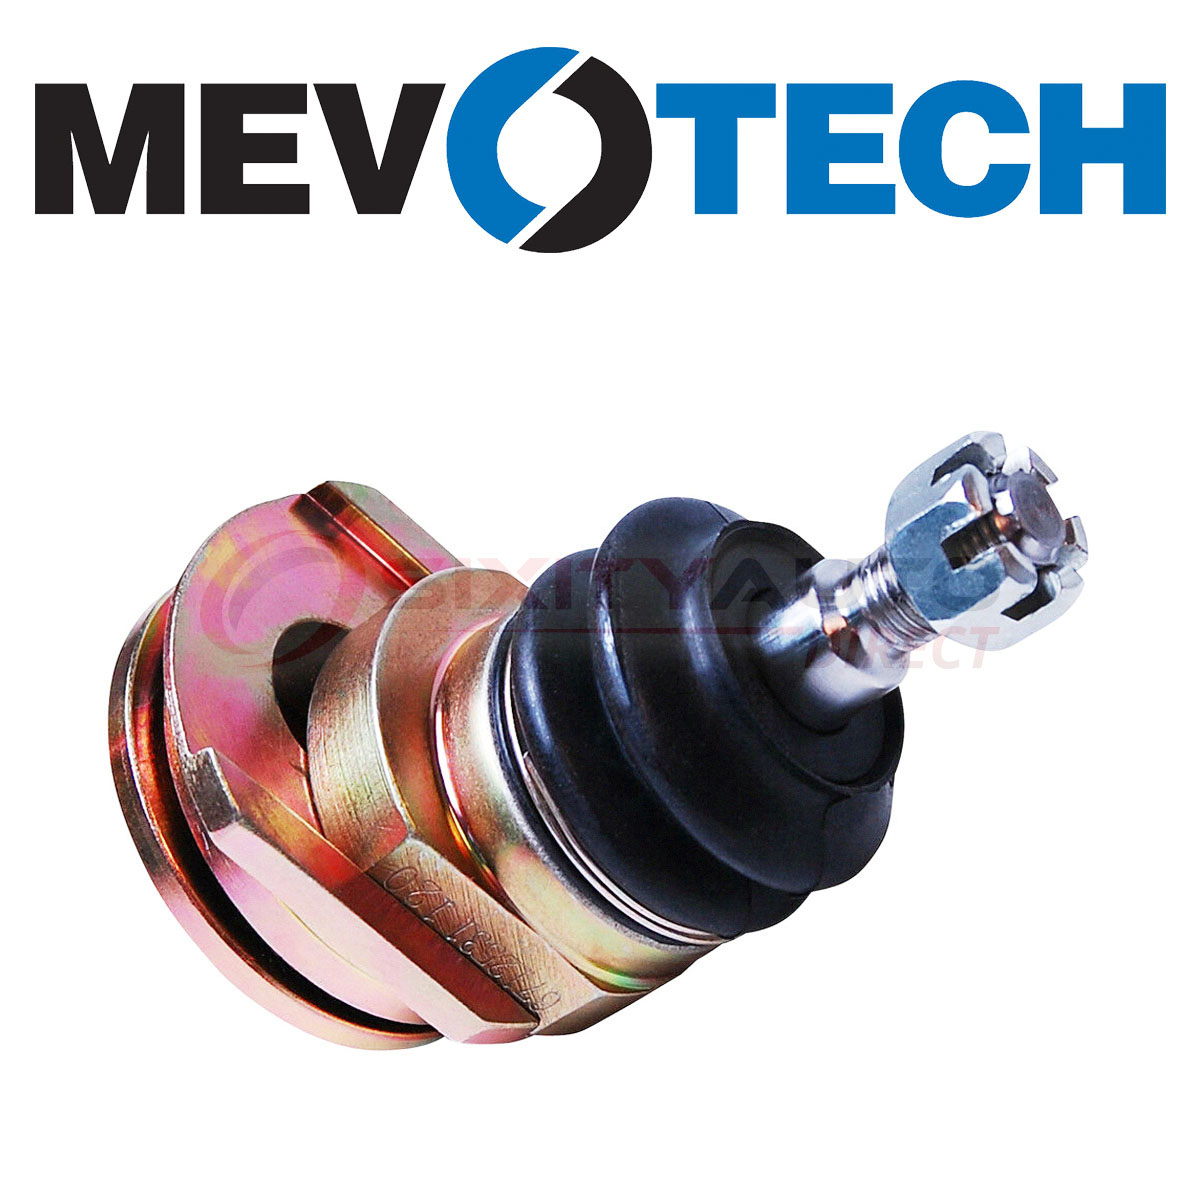 Mevotech Suspension Ball Joint For 2004-2008 Acura TSX 2